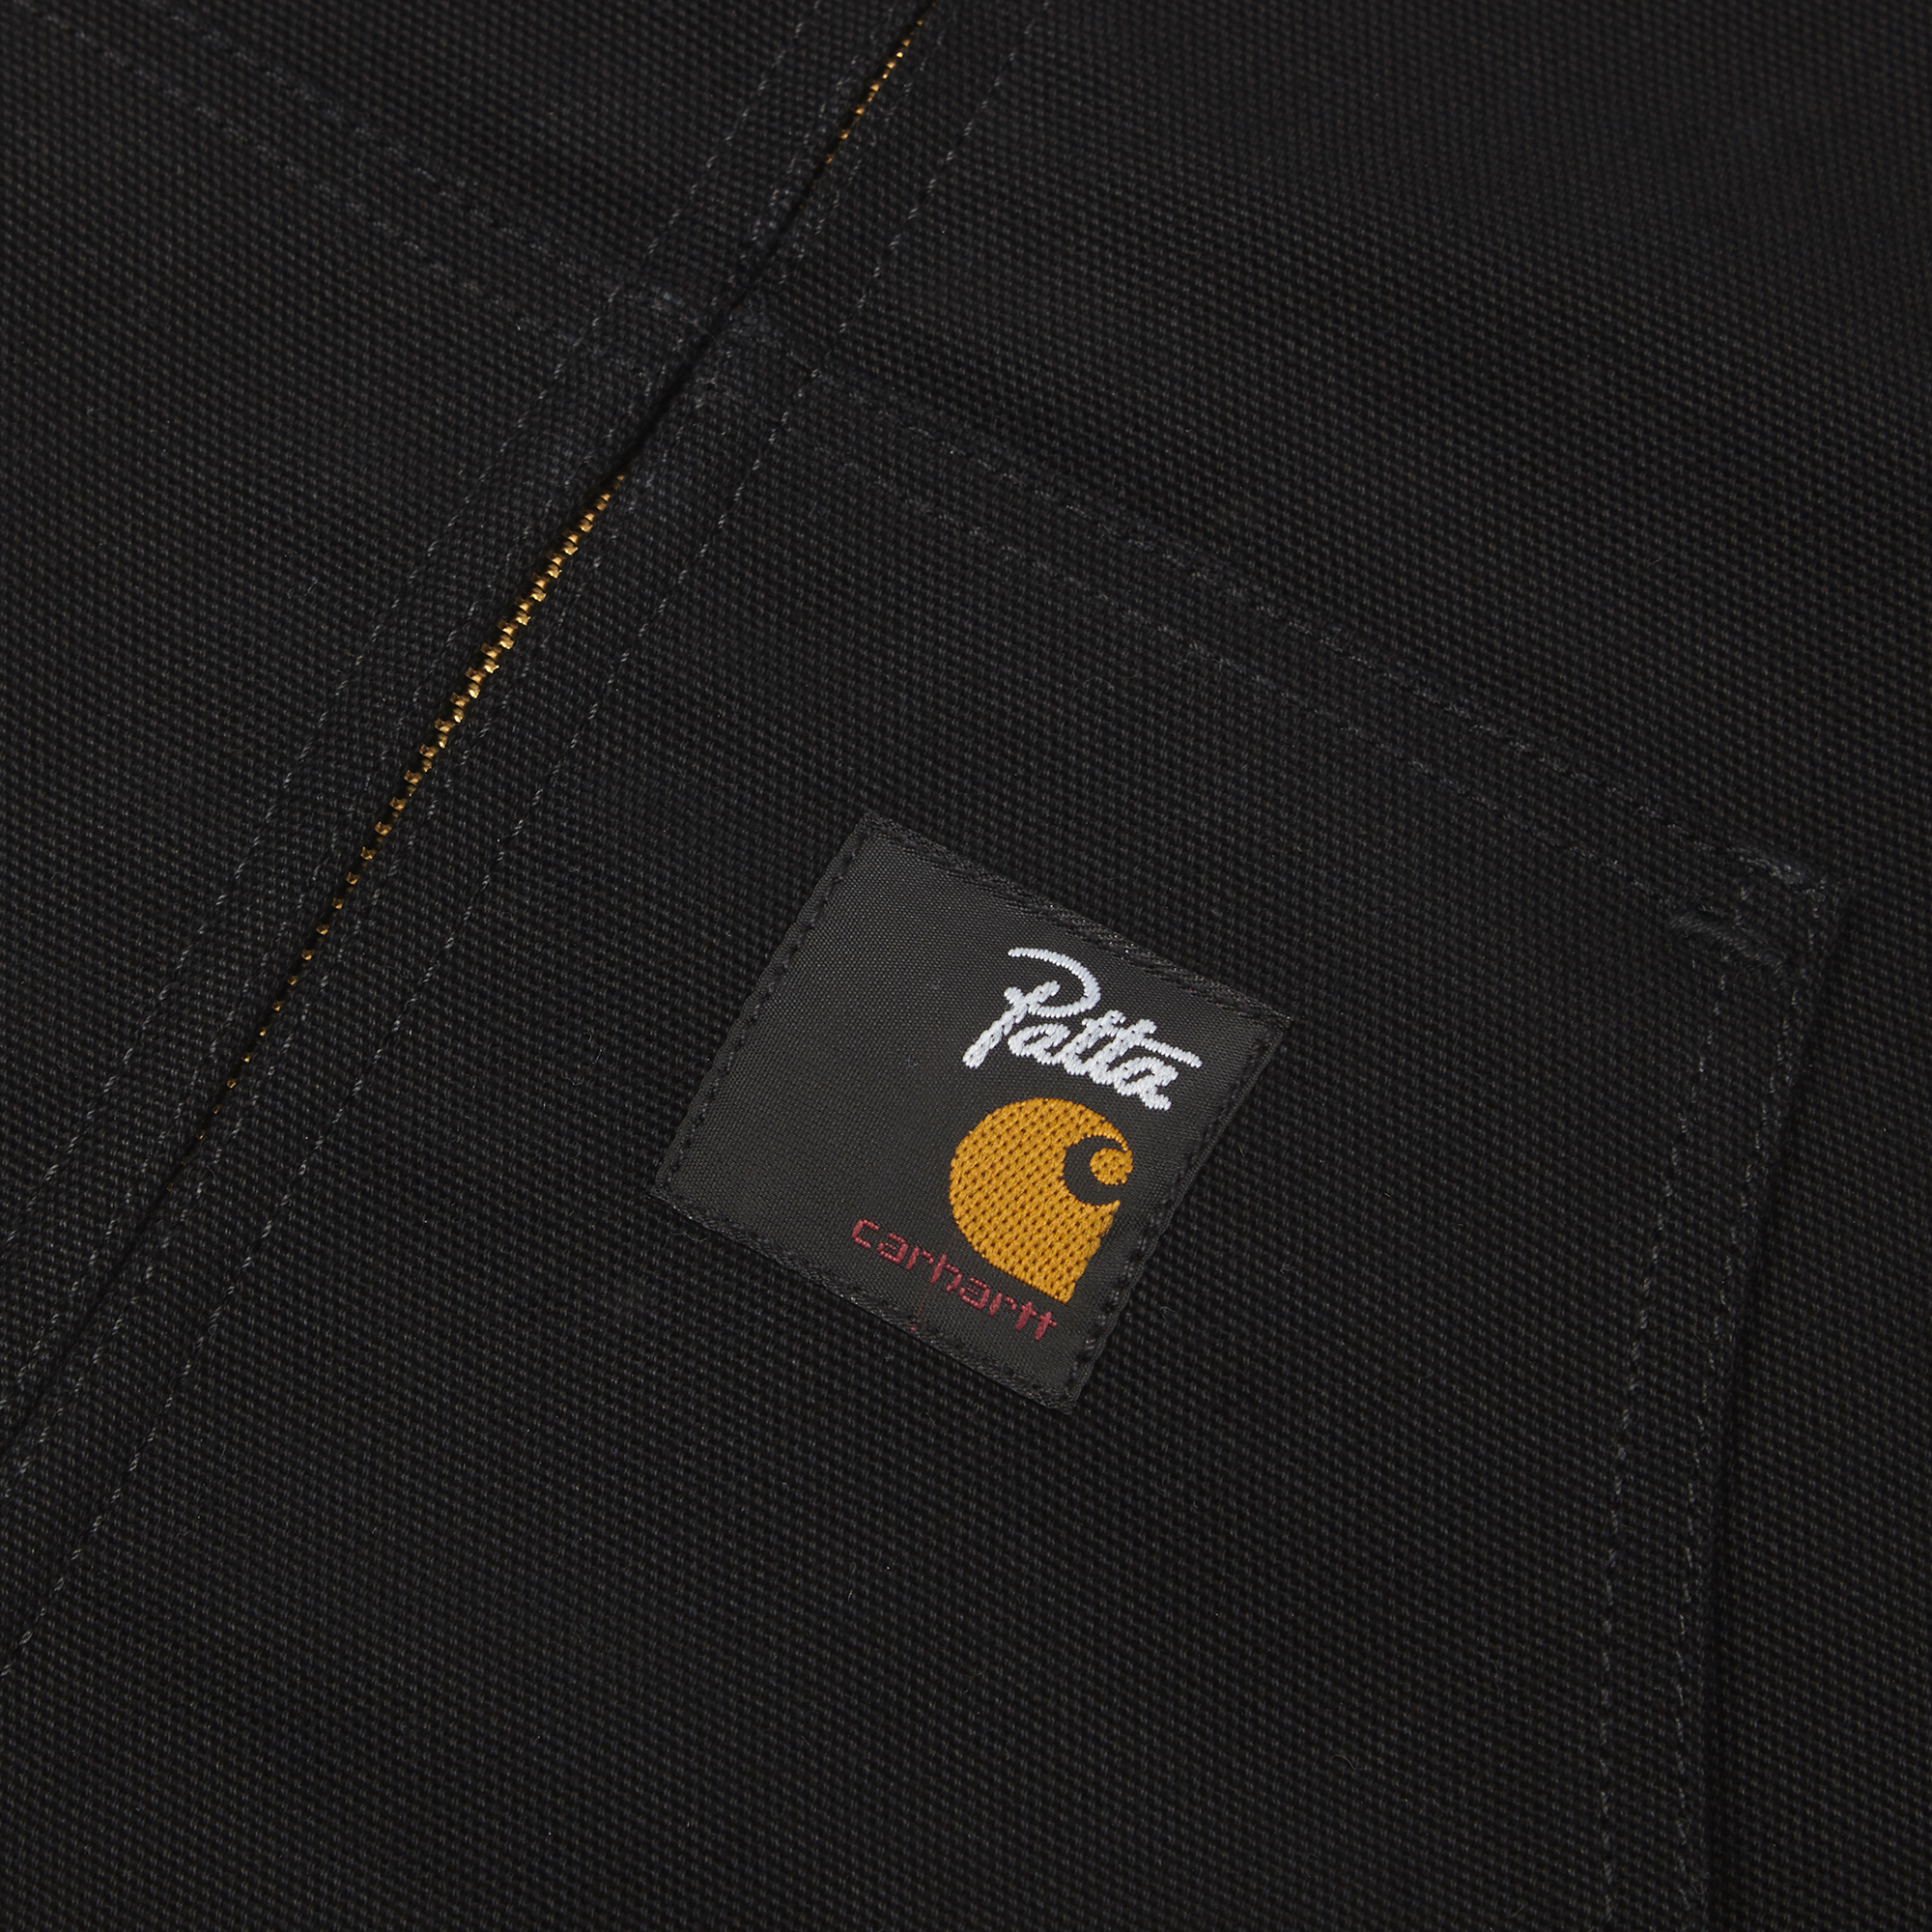 6ecb73ce7a Carhartt WIP x Patta Active Jacket - Black/Hamilton Brown